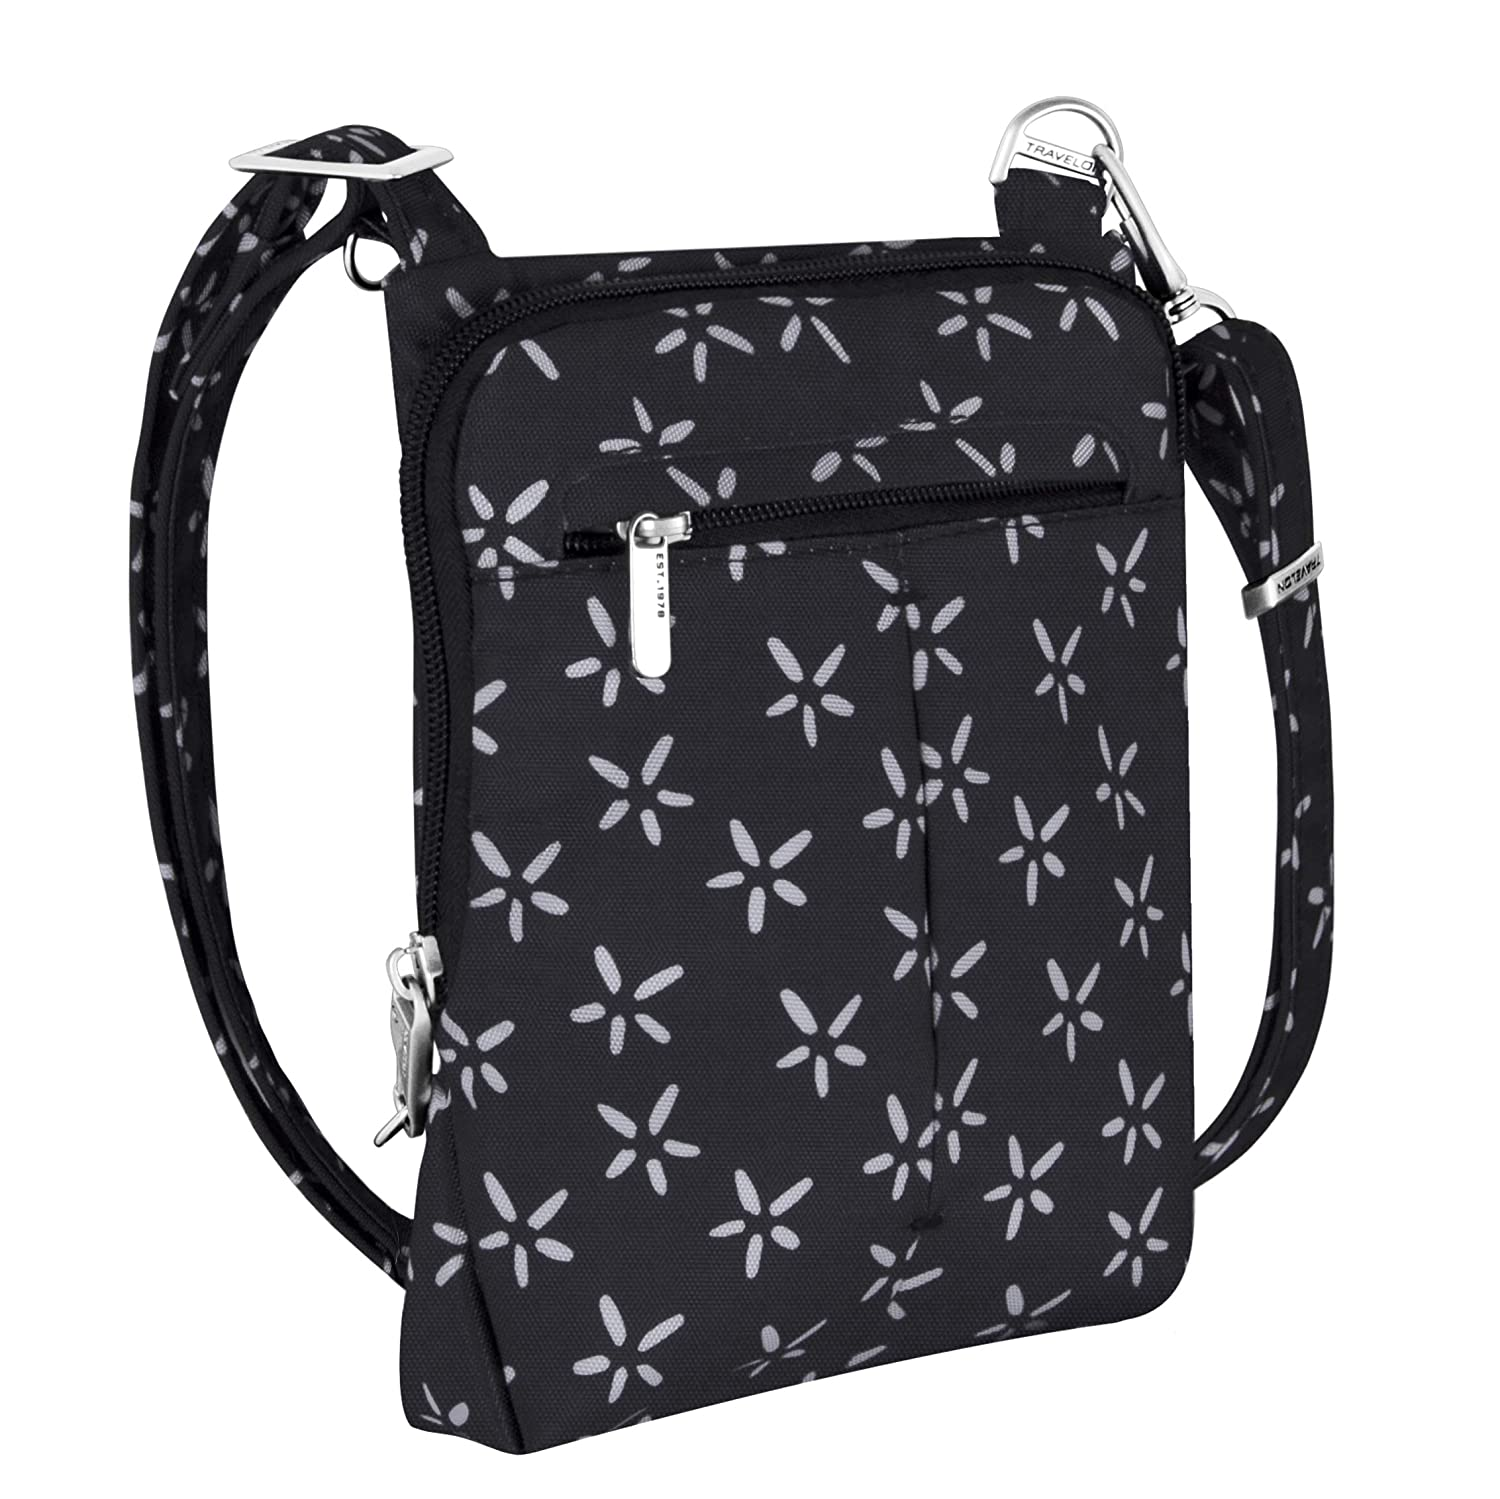 4af9865aa2 Travelon Anti-Theft Classic Light Mini Crossbody Bag (A B W SMALL FLOWER  PRINT)